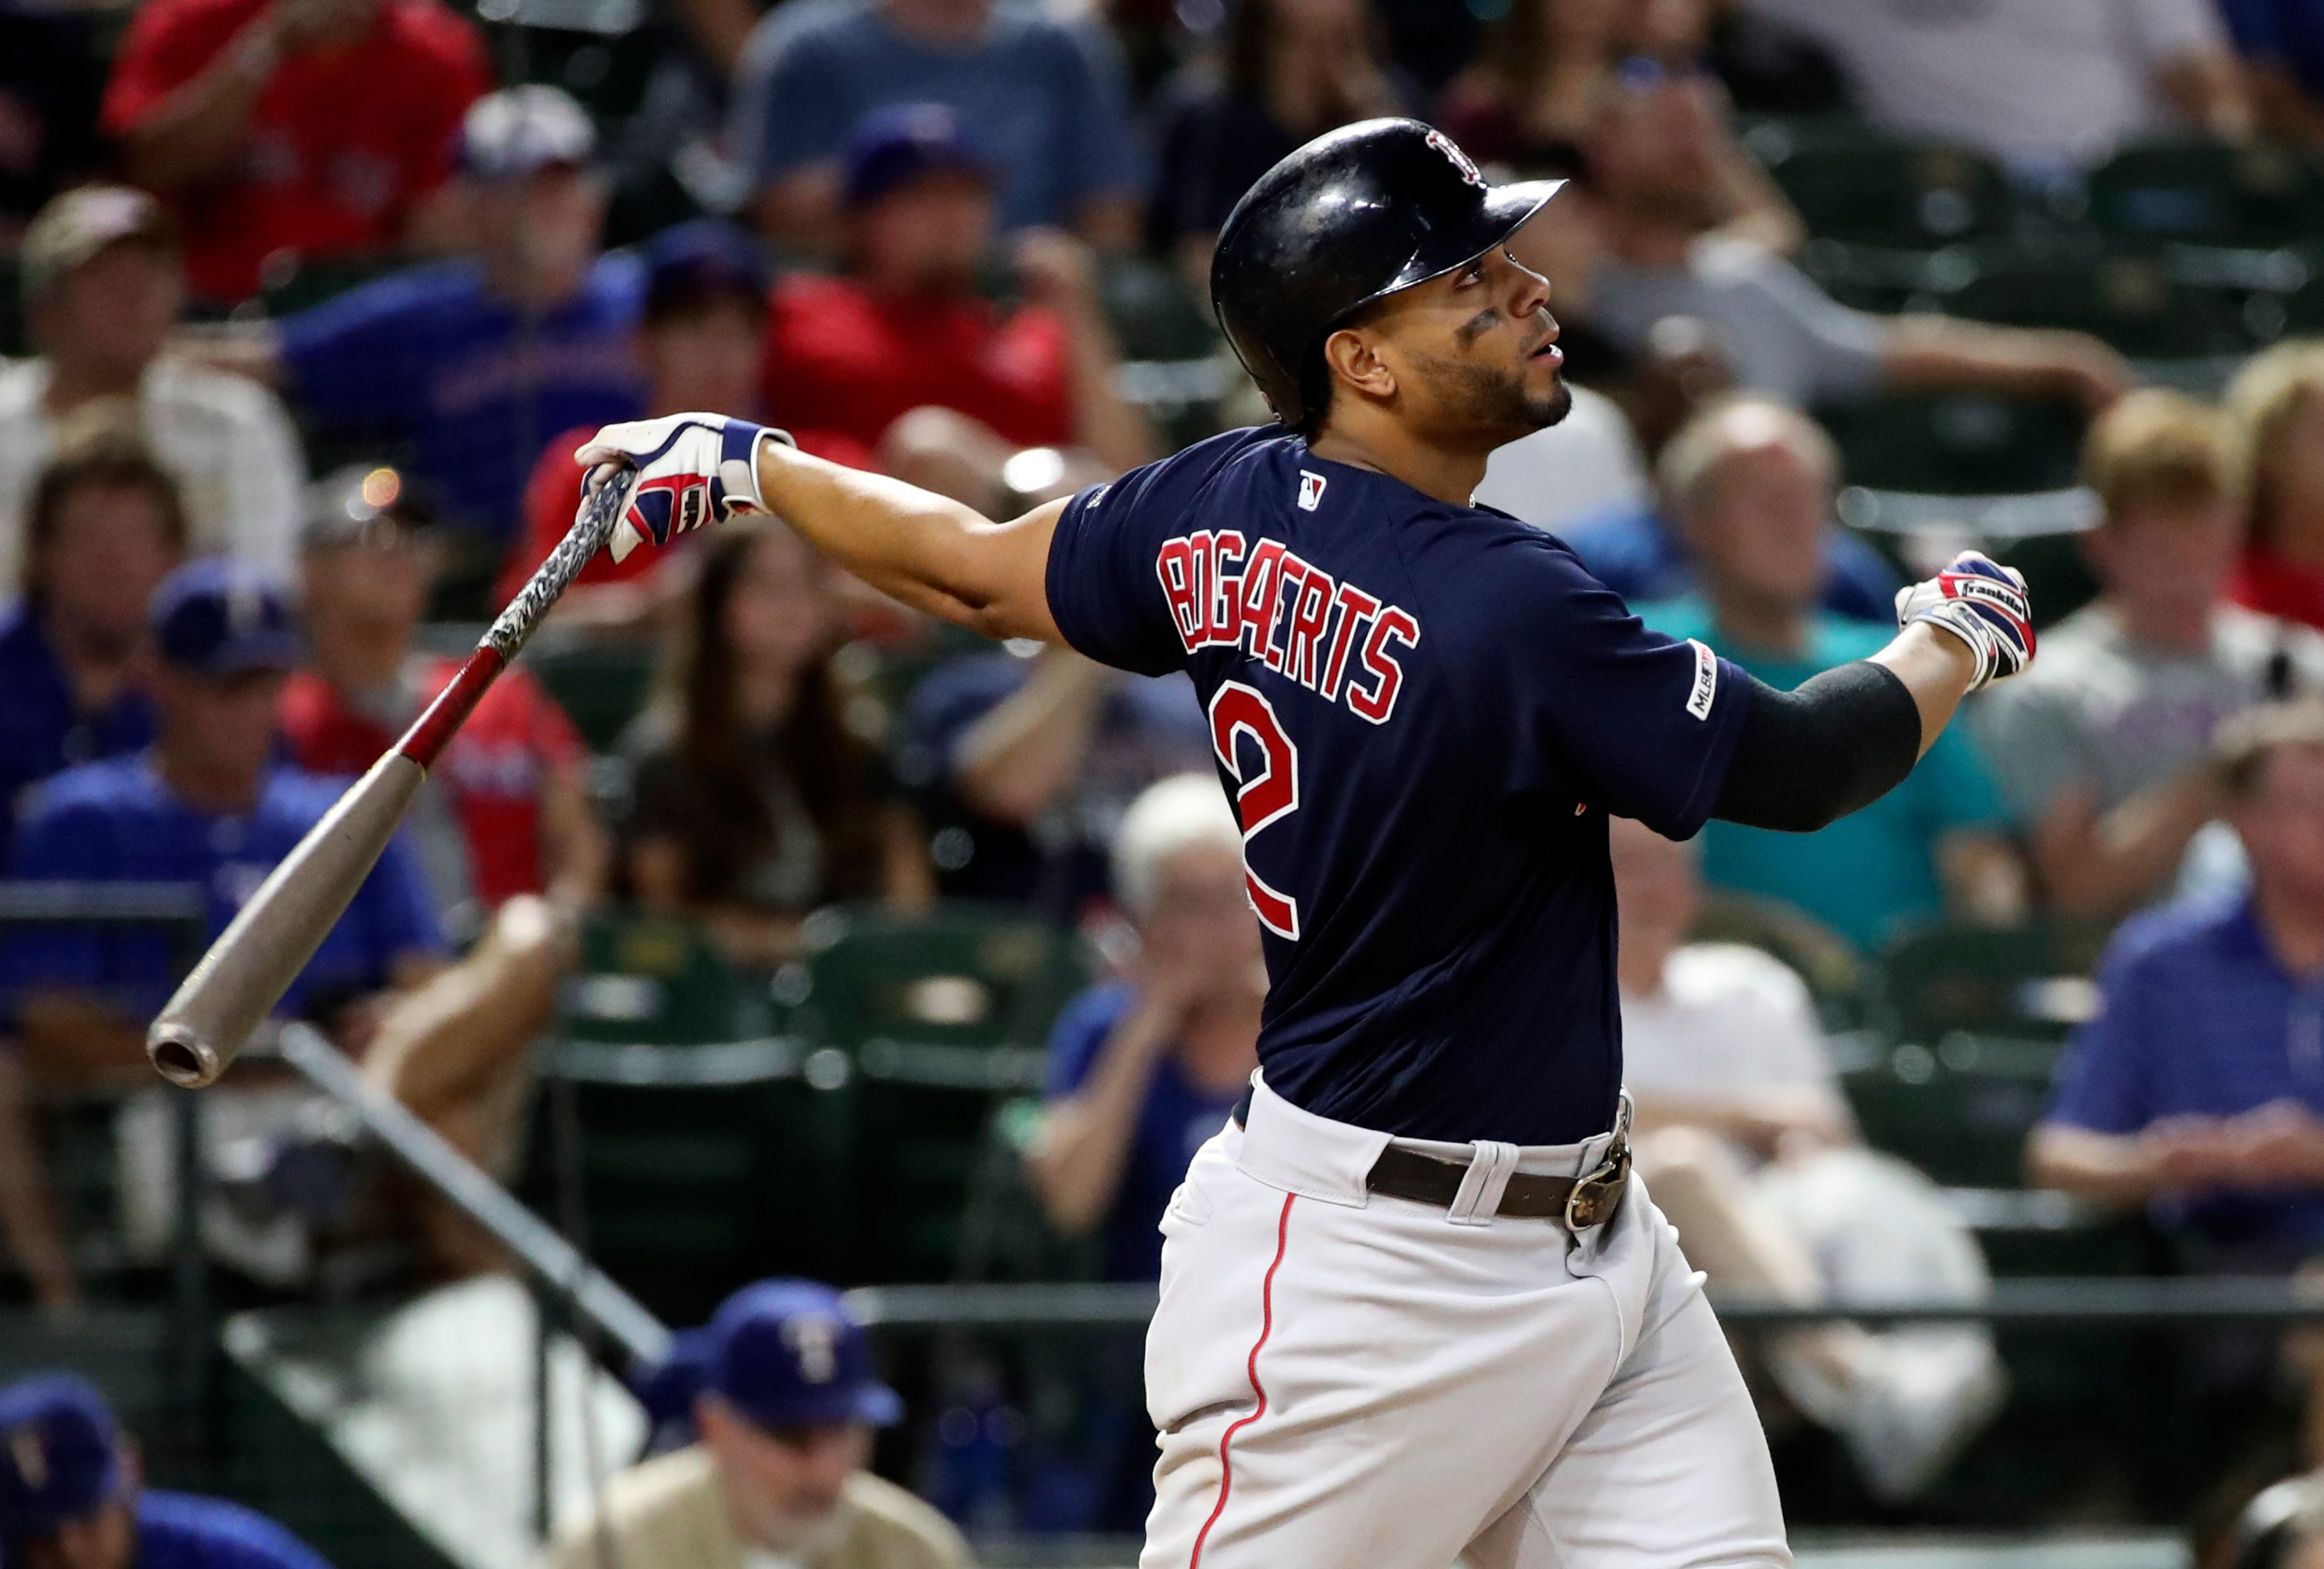 Mazz: Time for Xander Bogaerts to take a lead role